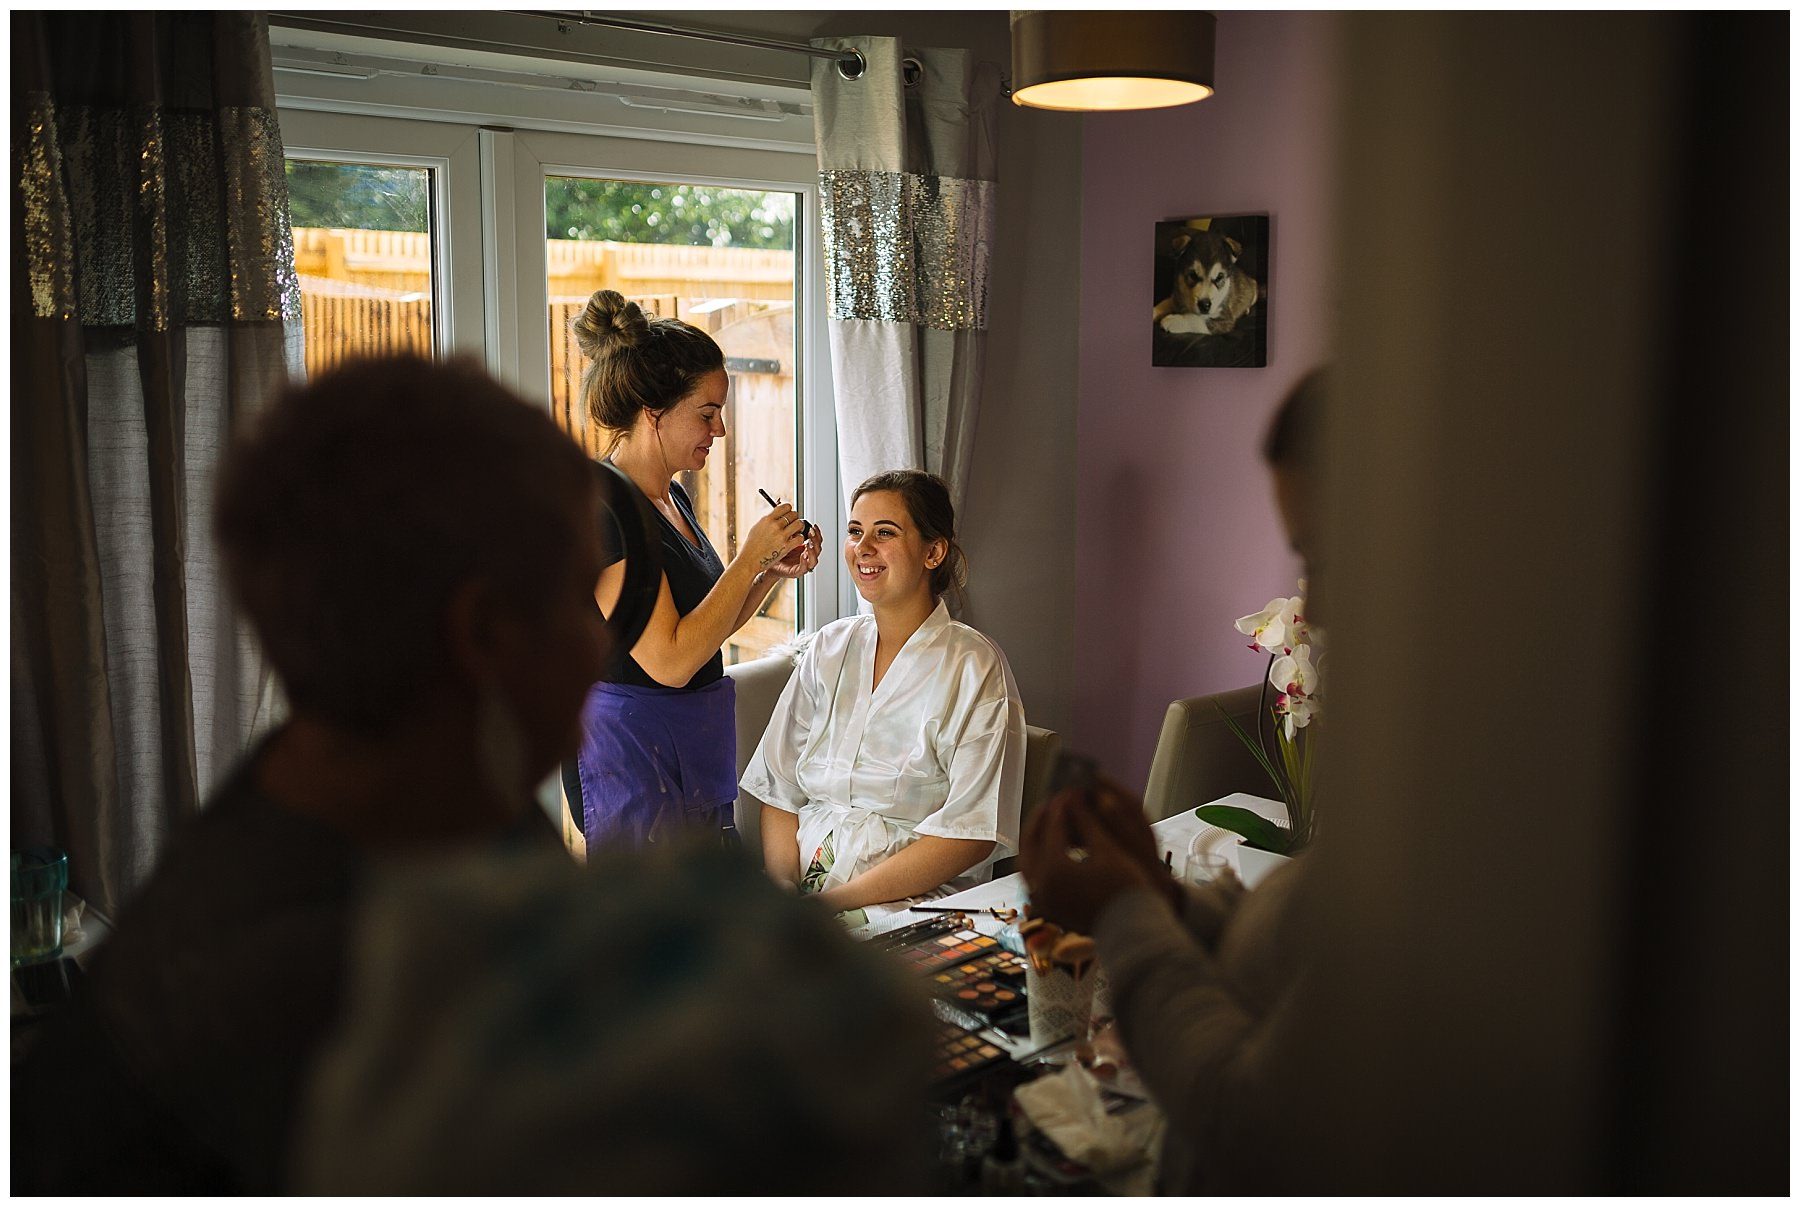 Busy bridal prep scene at brides house